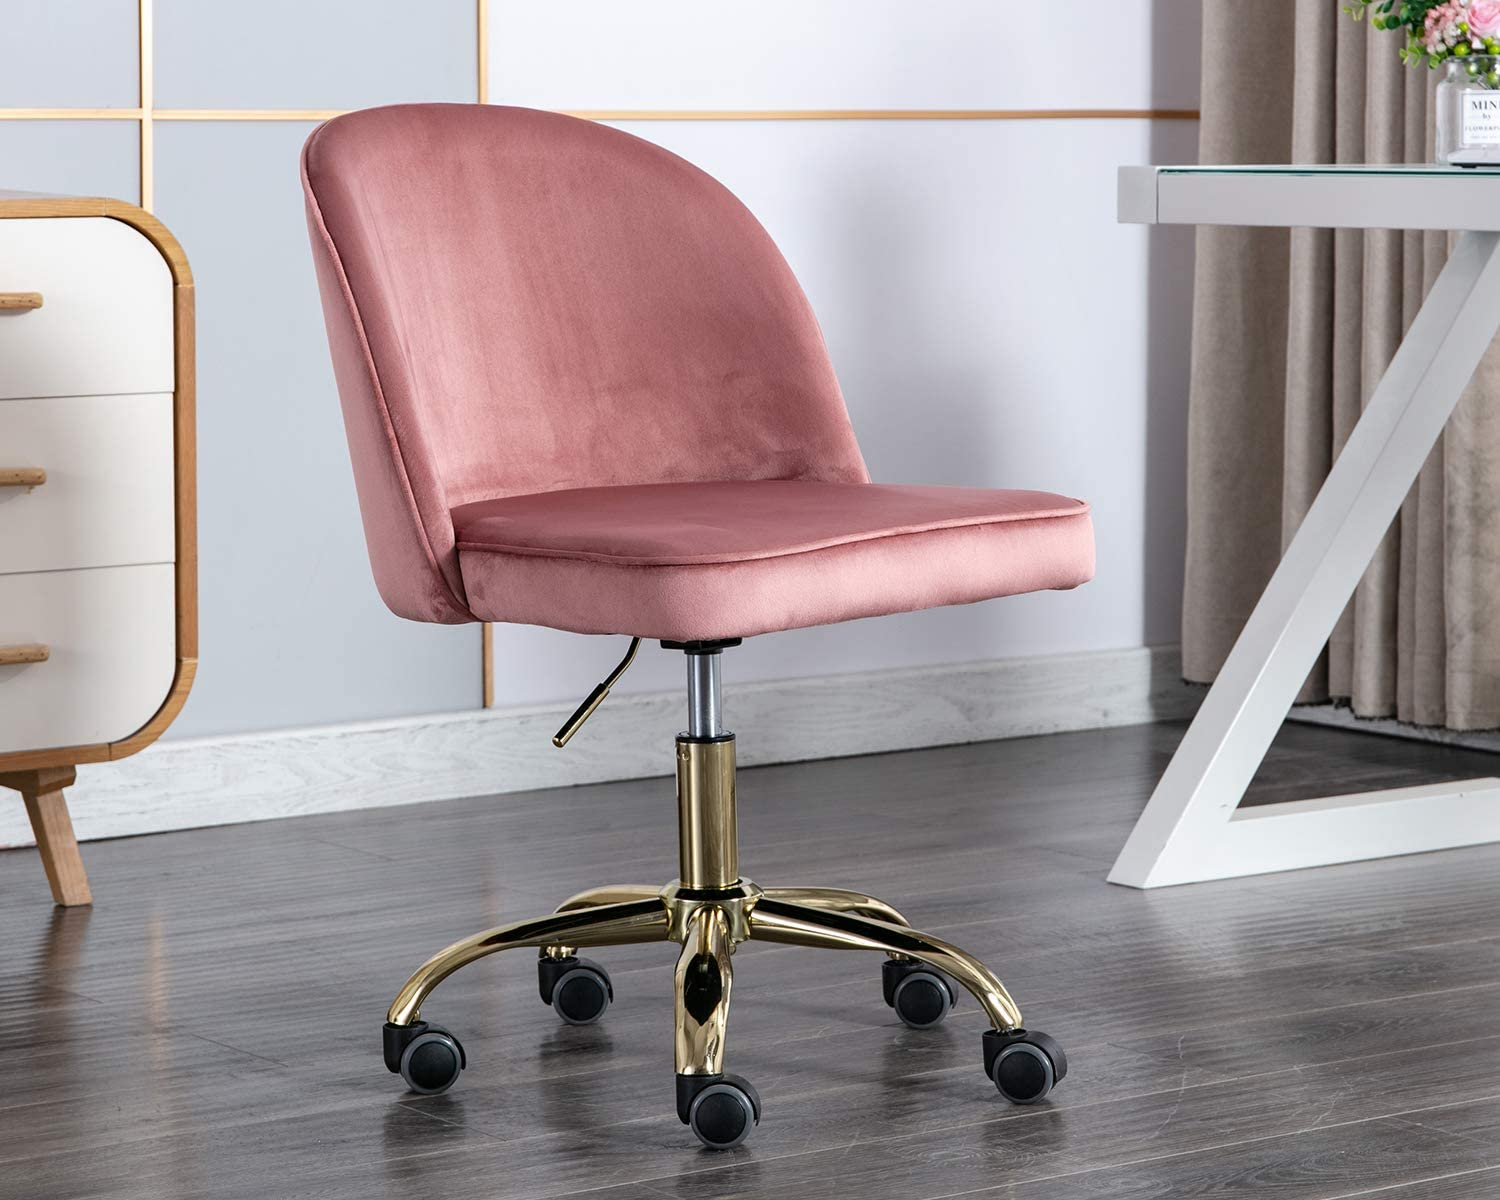 Chairus Tufted Task Chair, Reception Chair with Height Adjustment (Armless Design for Small Homes and Offices), Rose Pink